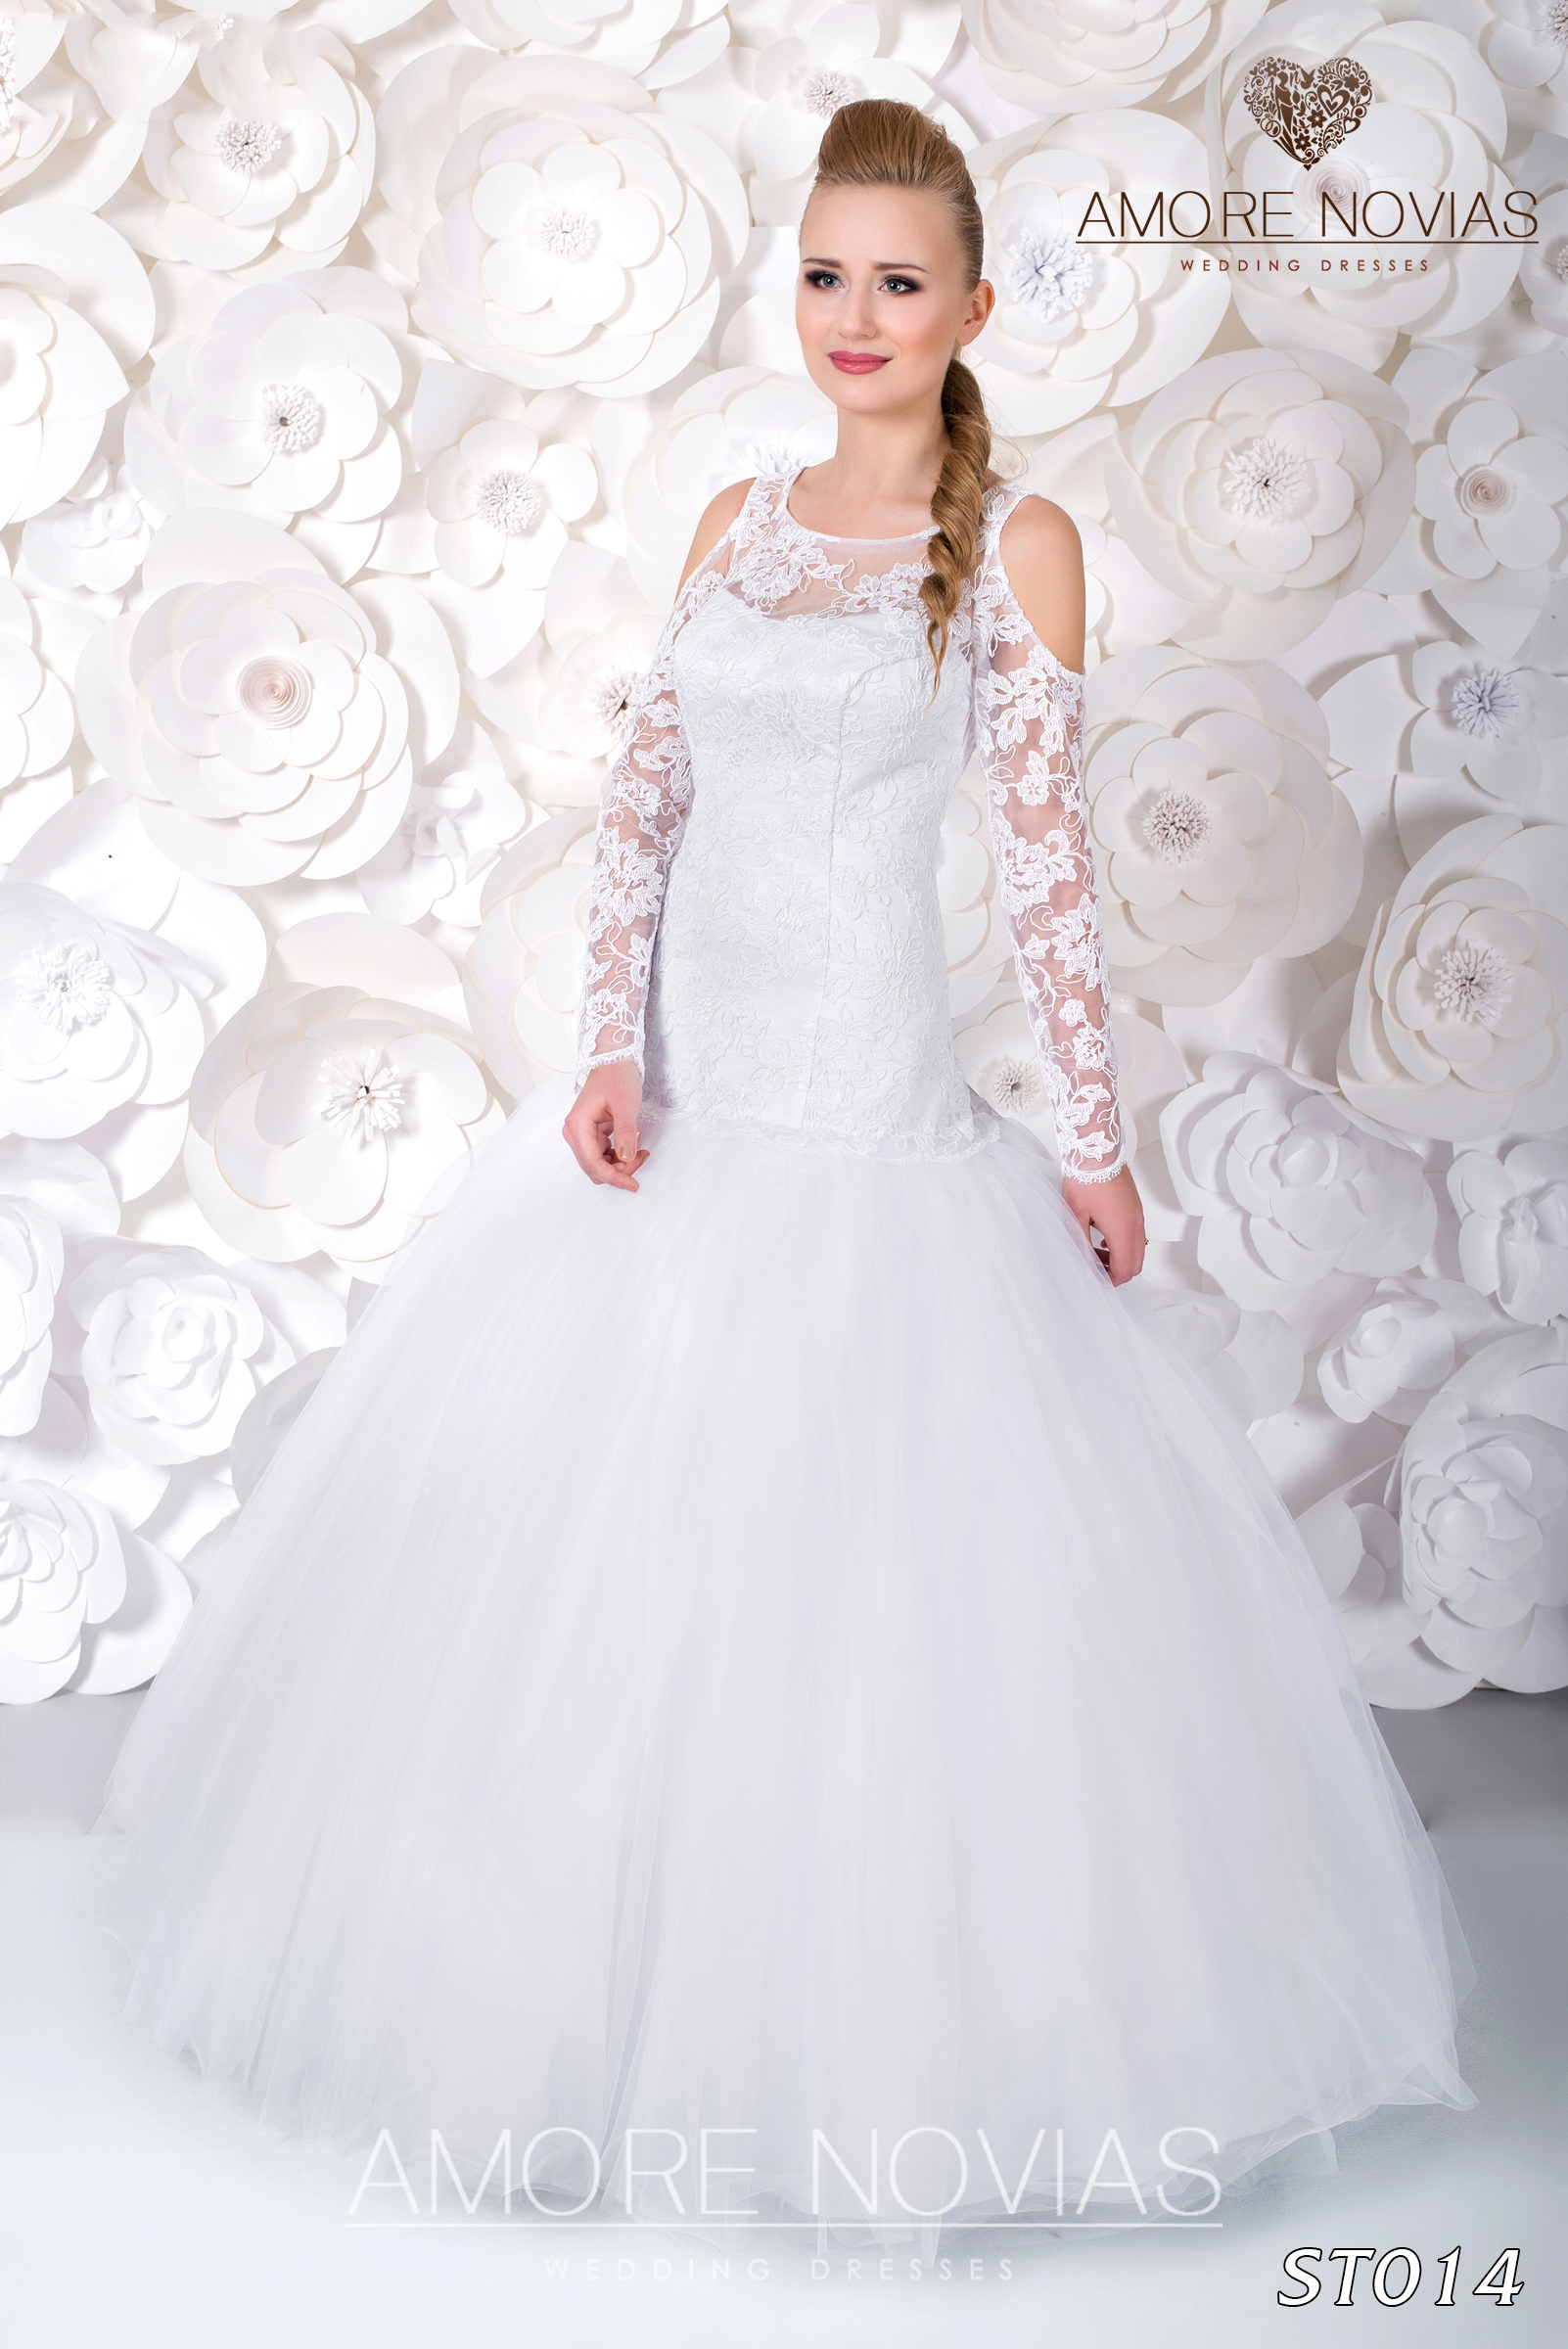 http://amore-novias.com/images/stories/virtuemart/product/st014.jpg